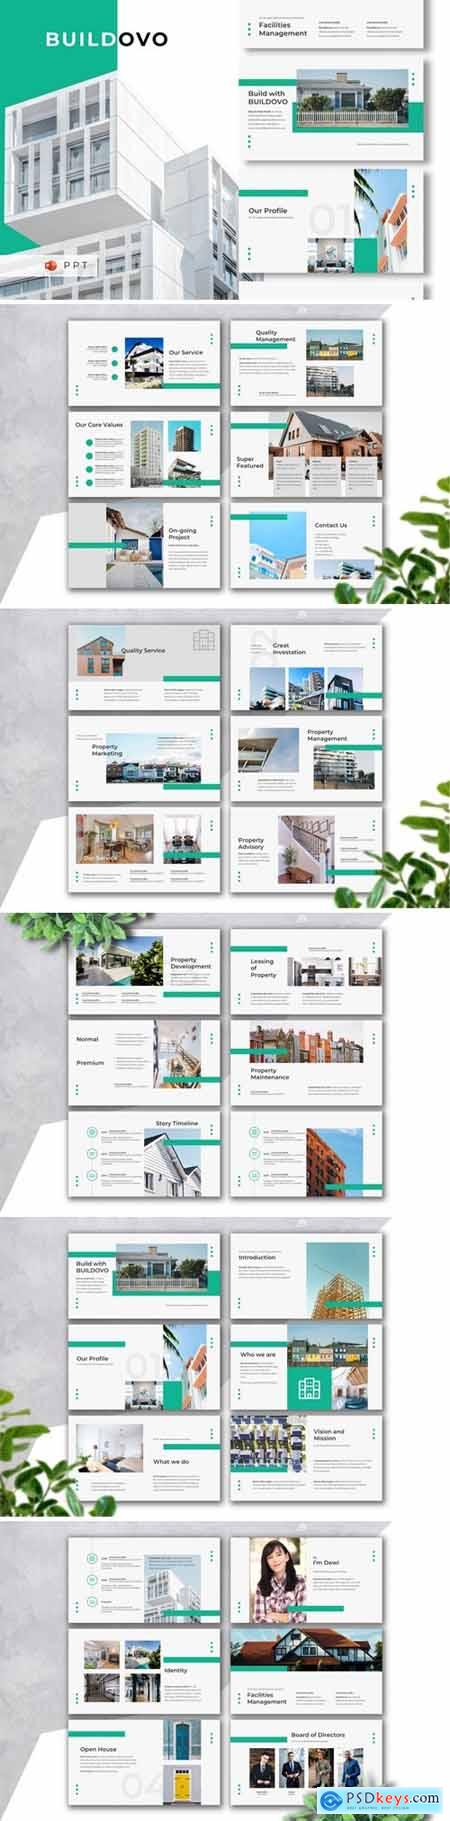 BUILDOVO - Real Estate Powerpoint, Keynote and Google Slides Templates